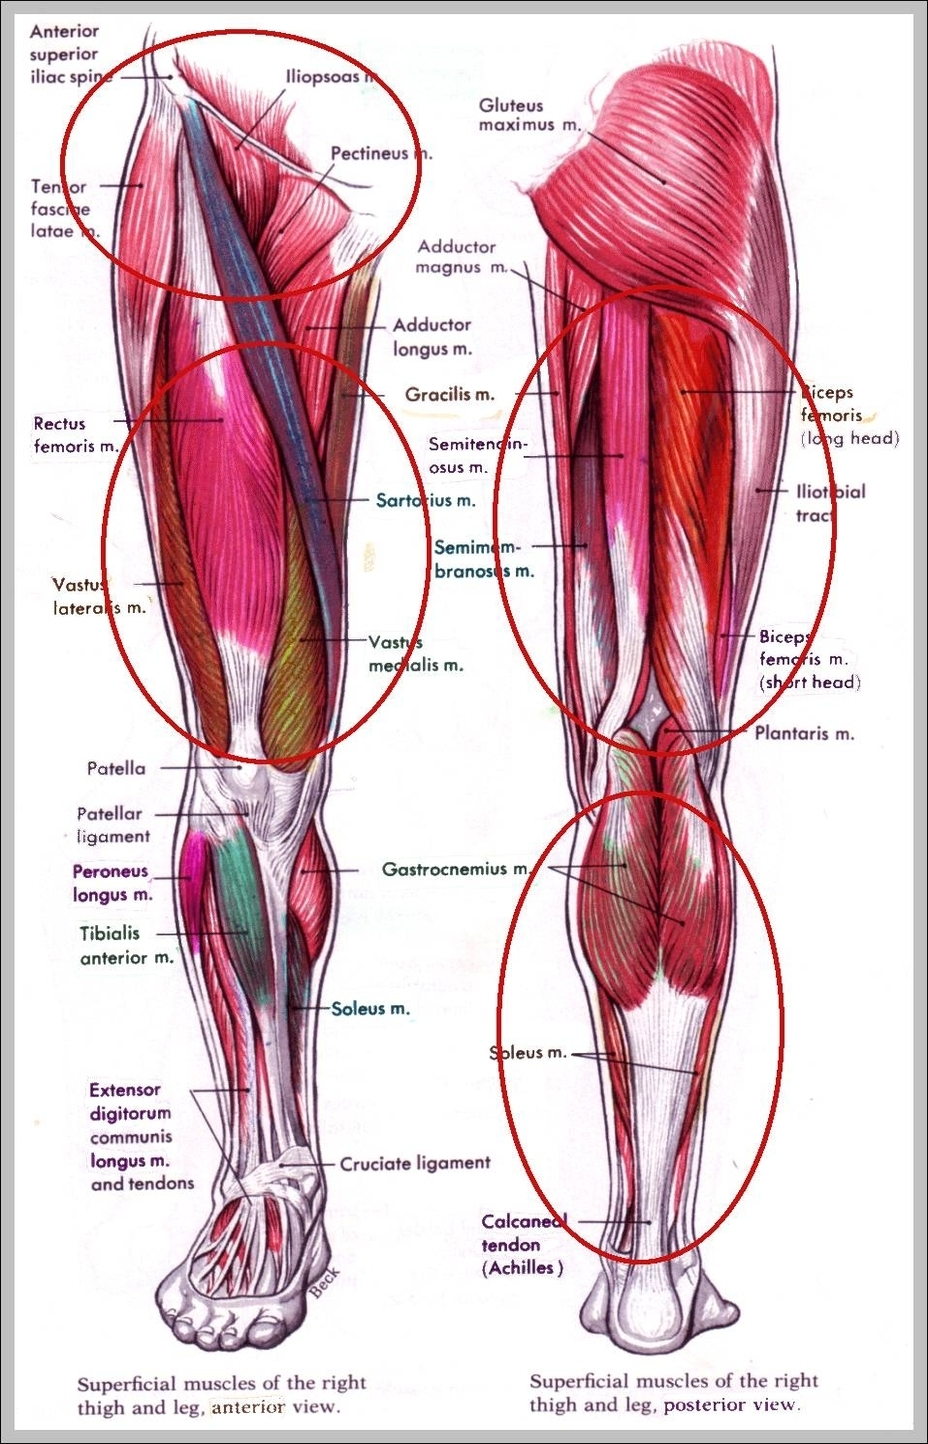 hight resolution of muscles in hip area diagram chart diagrams and charts with labels this diagram depicts muscles in hip area